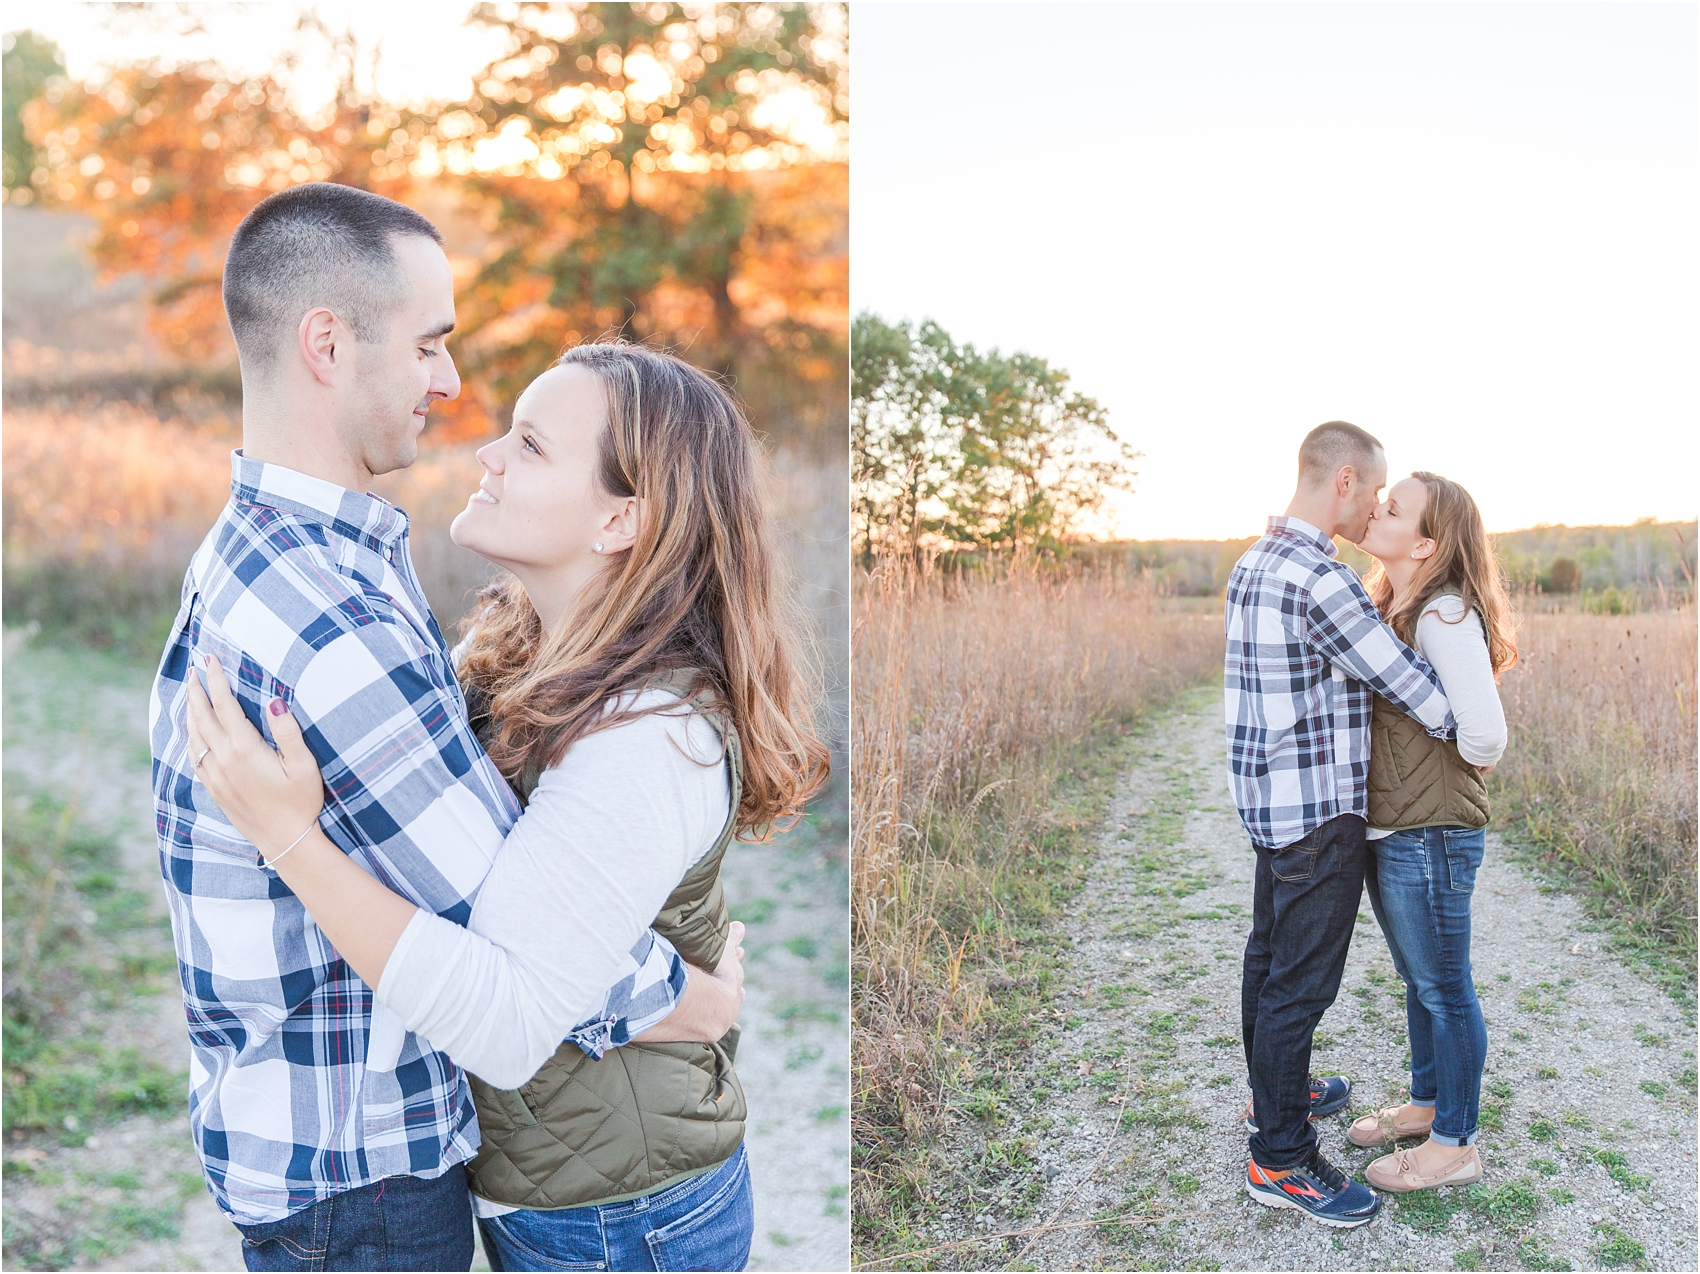 romantic-fall-engagement-photos-at-indian-springs-metropark-in-clarkston-mi-by-courtney-carolyn-photography_0024.jpg